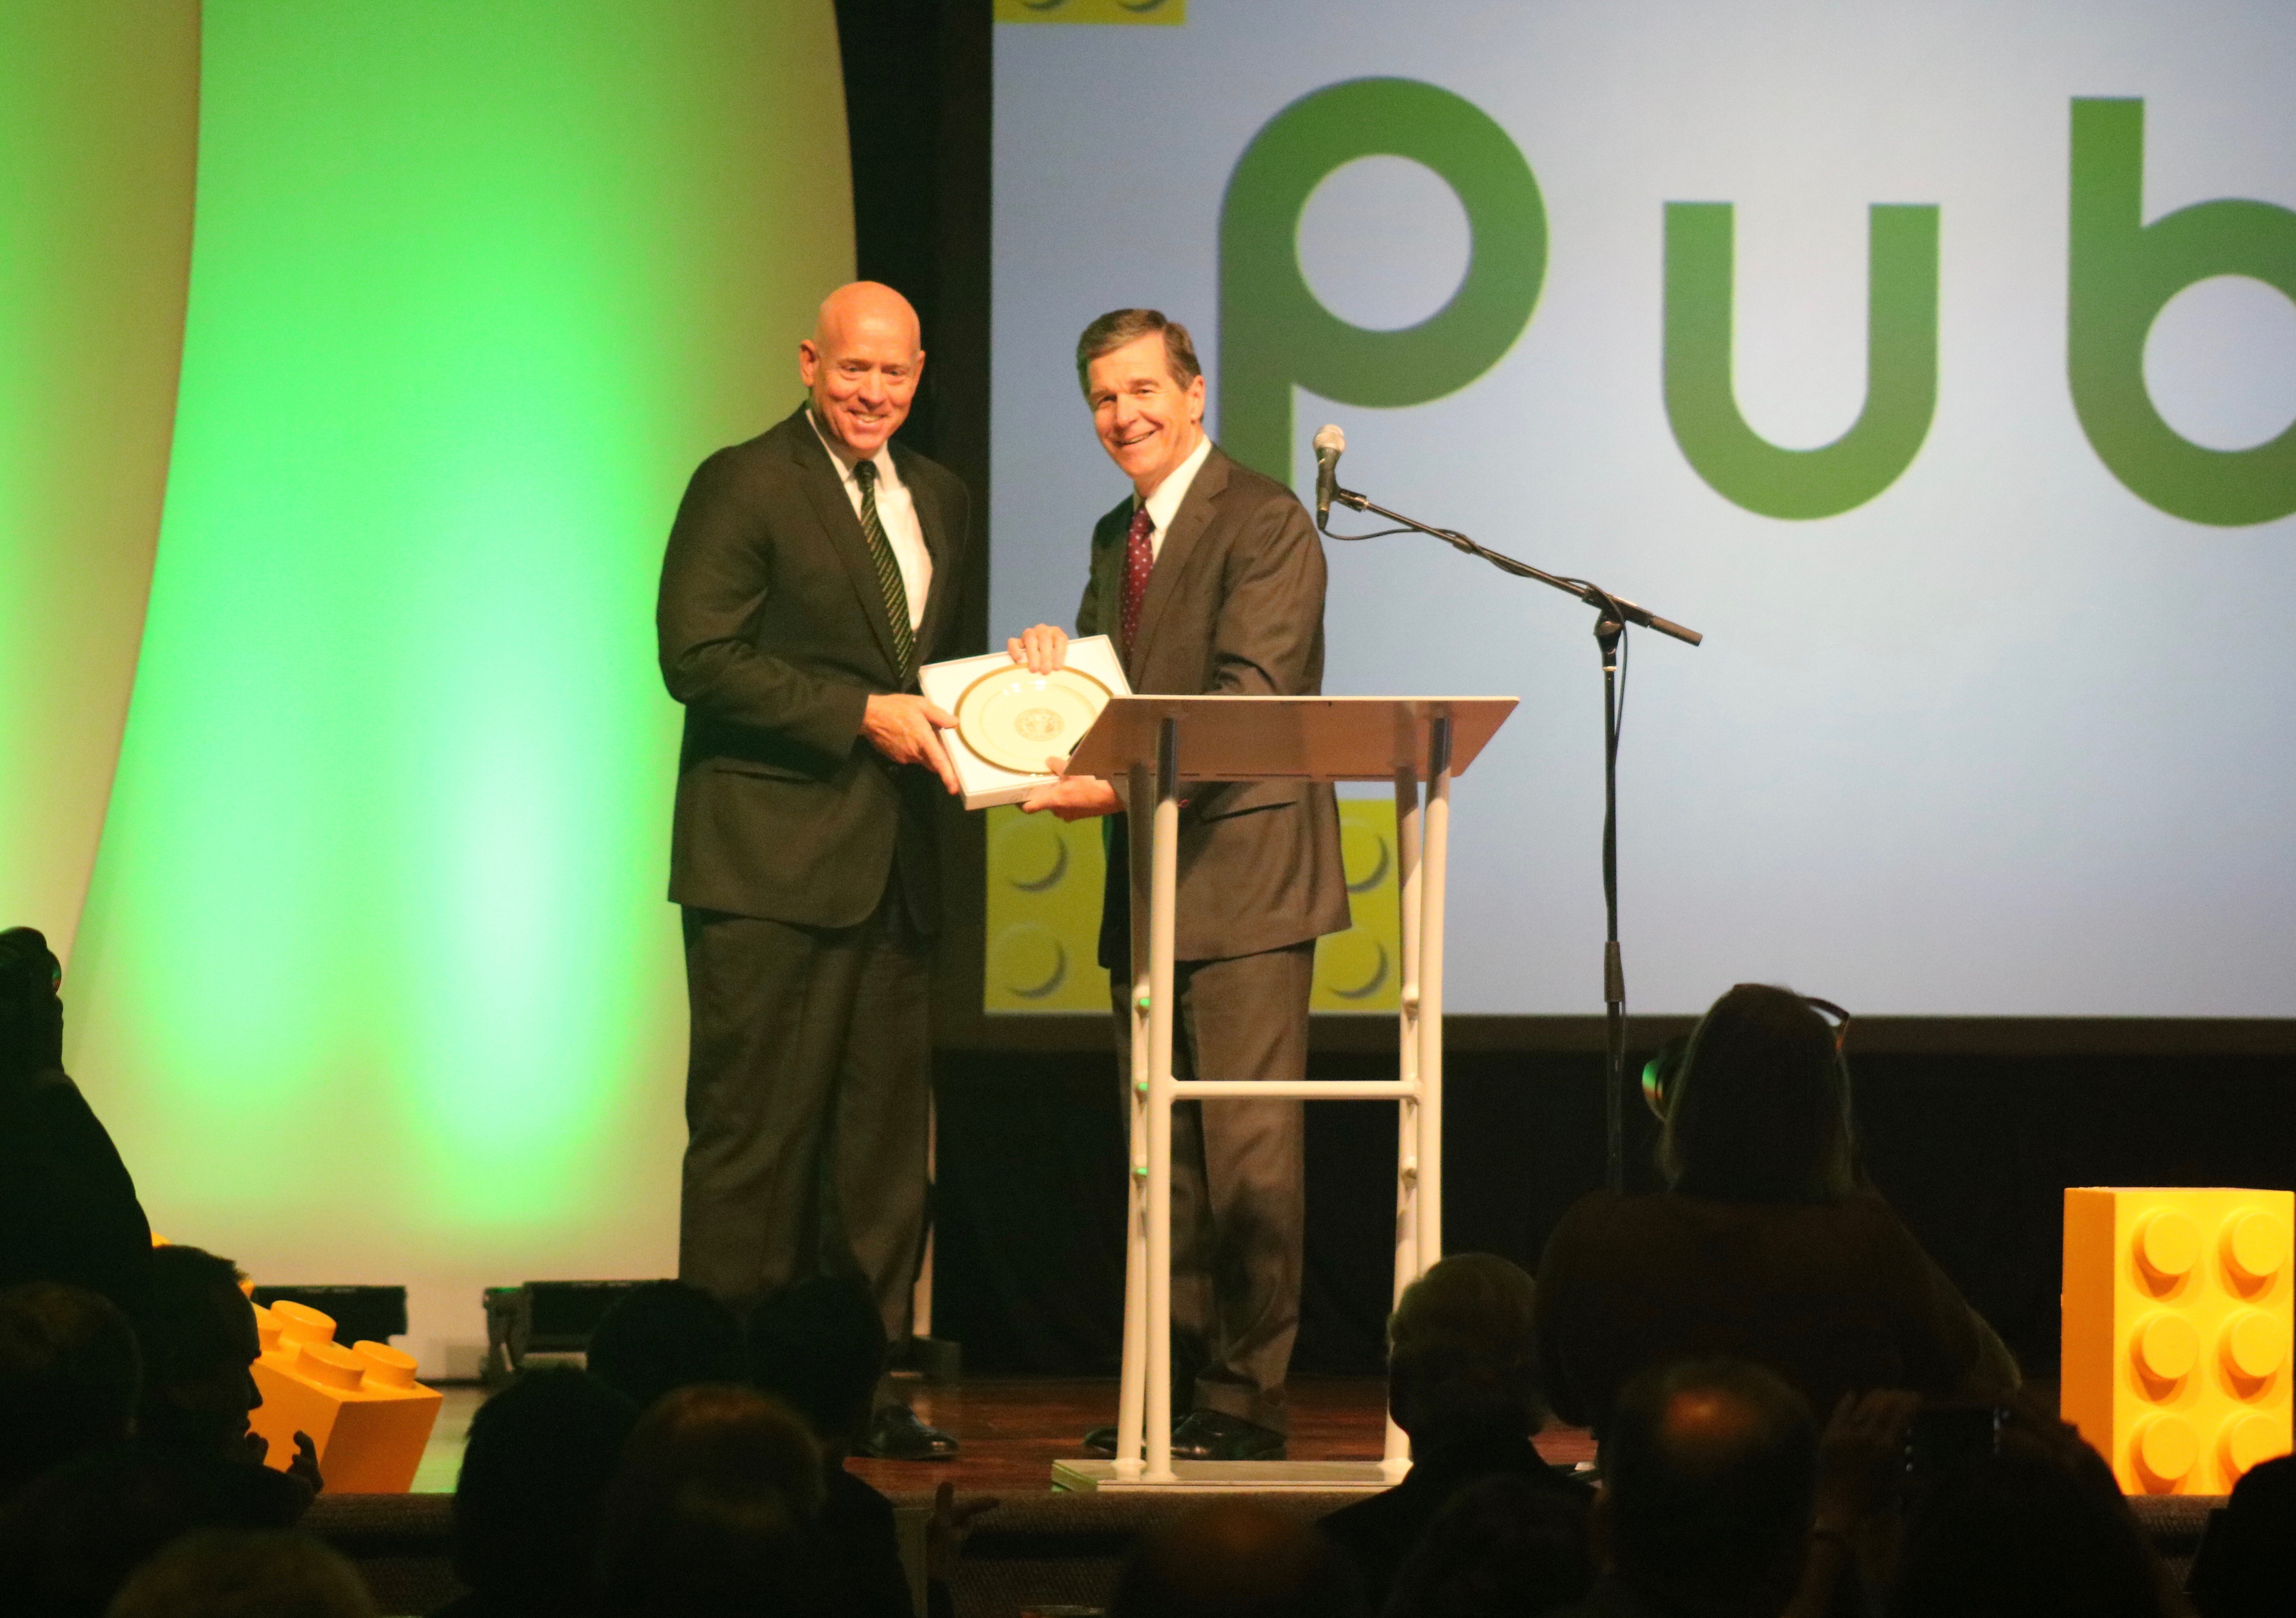 Publix to Build $300M Greensboro Distribution Center Creating Up to 1,000 New Jobs